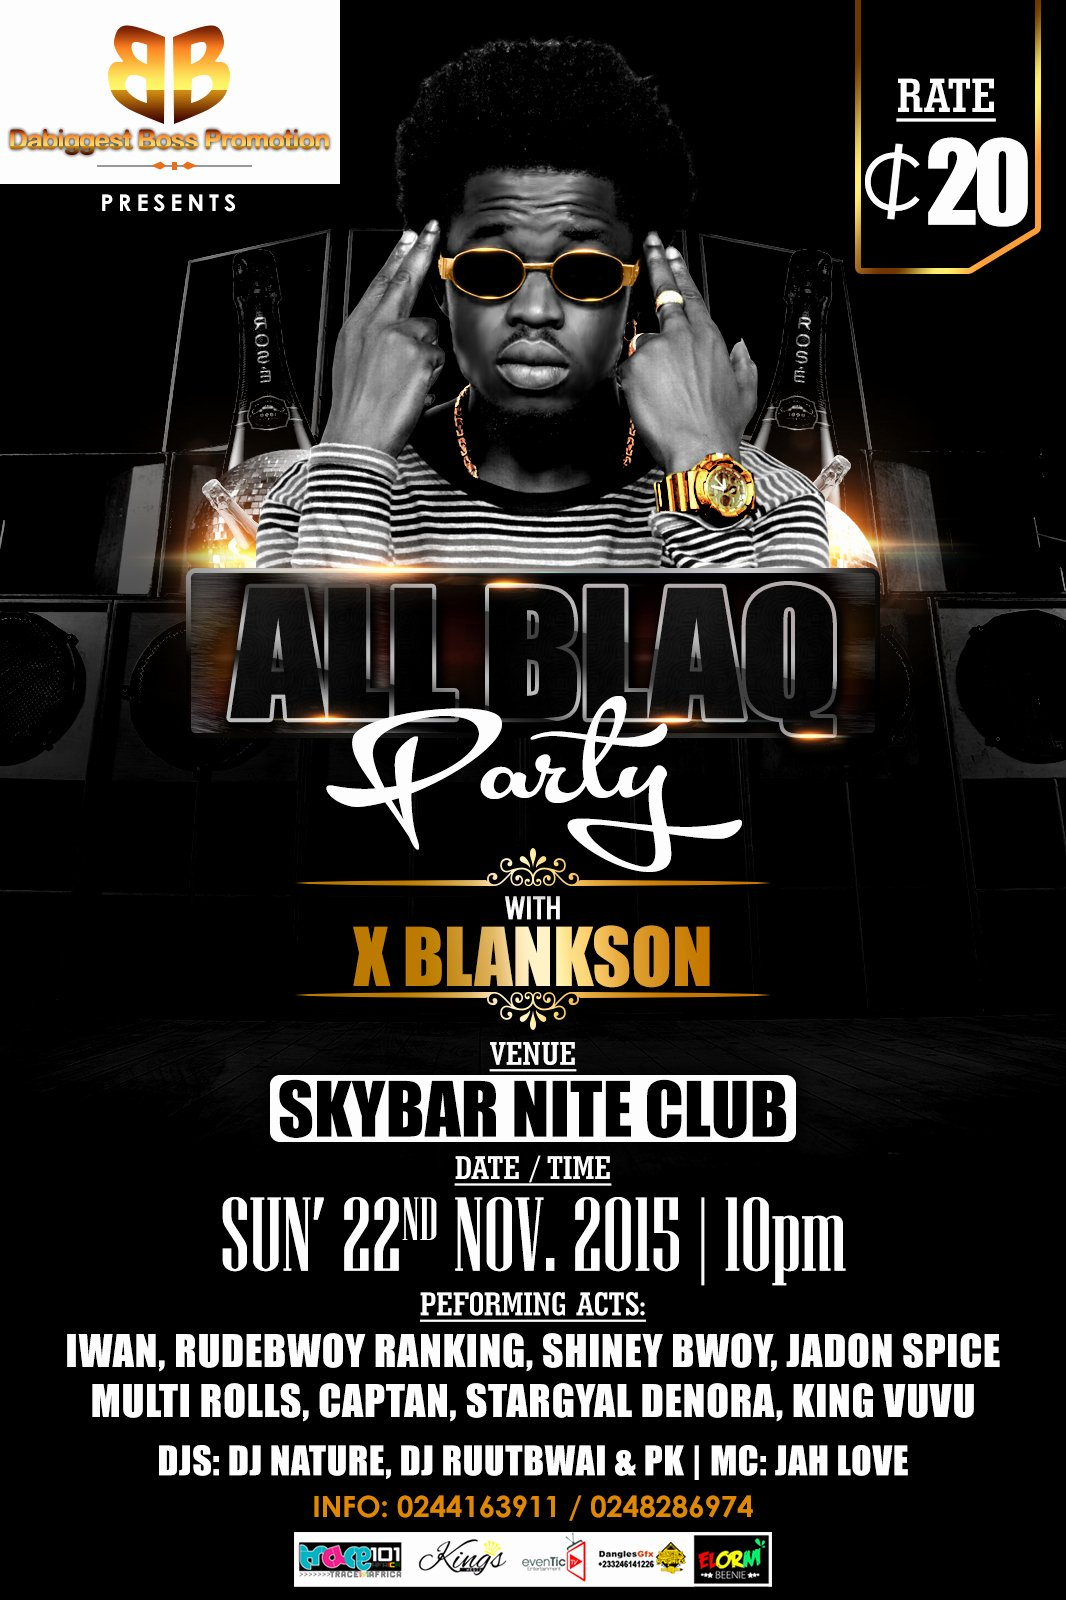 All Black Party Flyer Lovely Flyers Dangles Graphics All Black Party with X Blankson Powered by Dabiggestboss Promotions